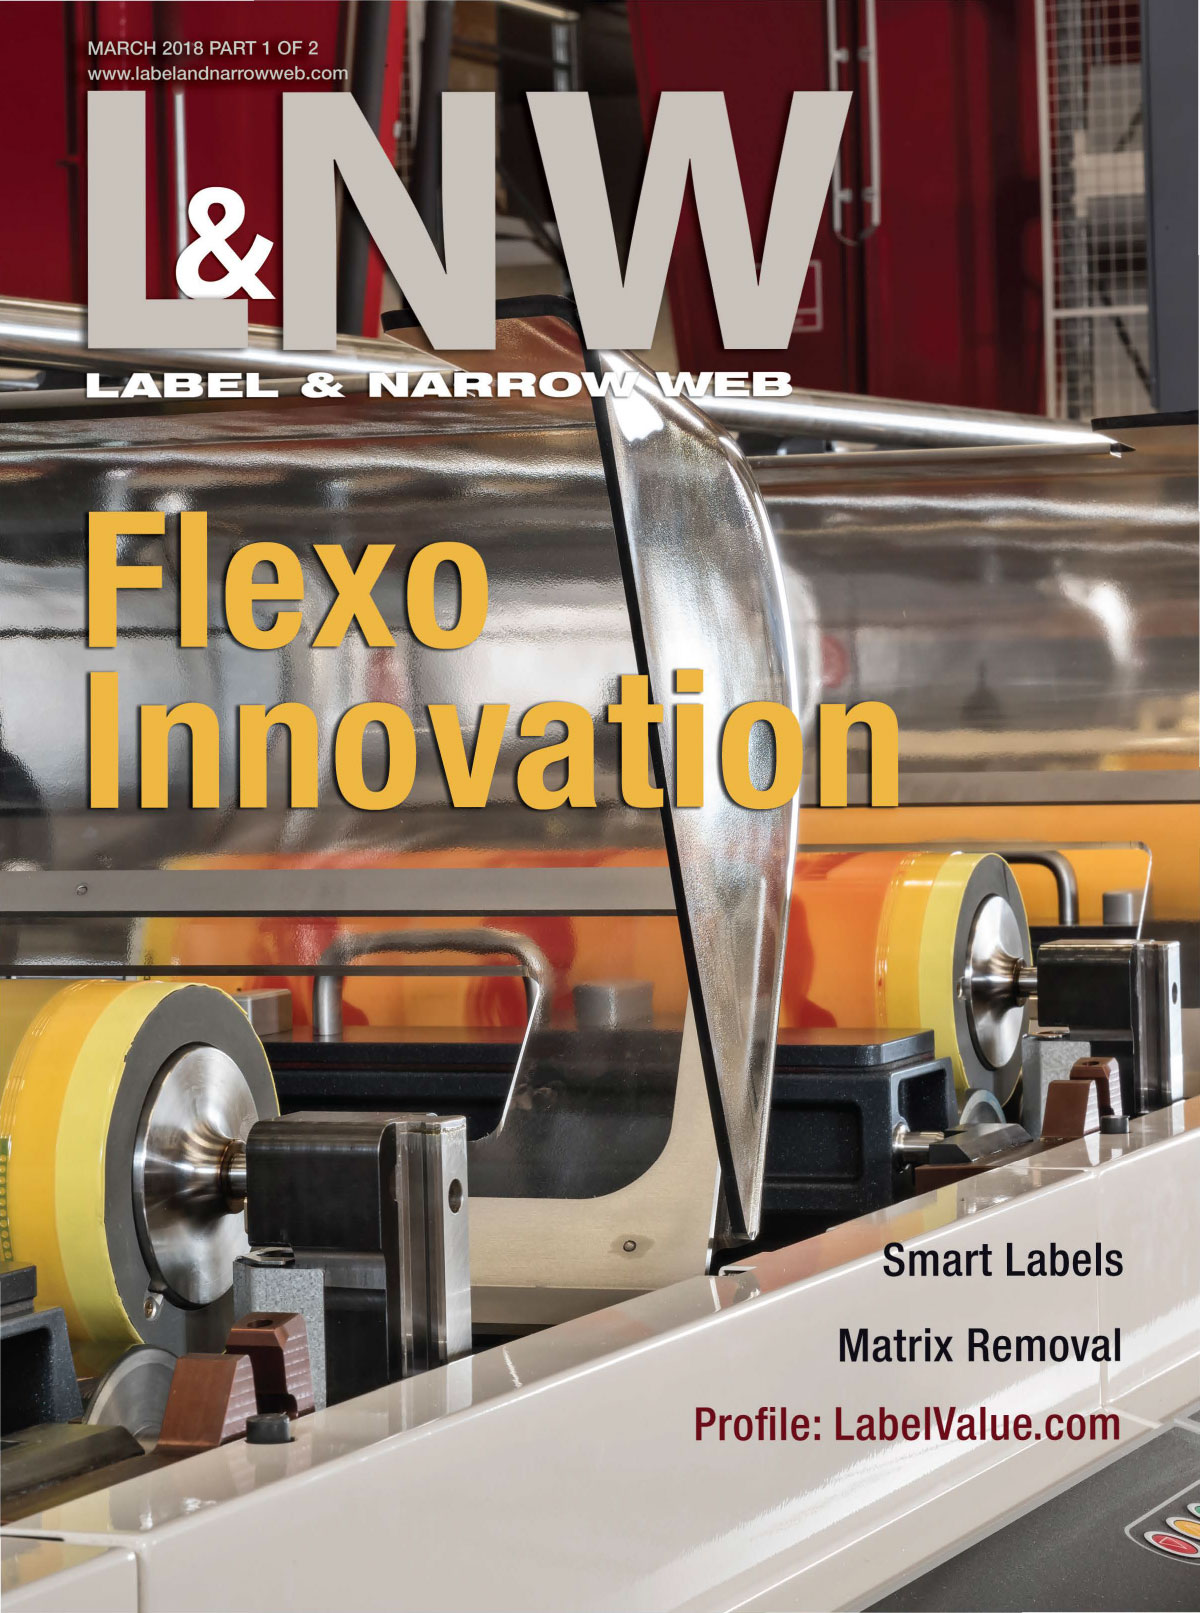 Flexo Innovation - Label Narrow Web - Best Full Ultra HD Flexographic Screening